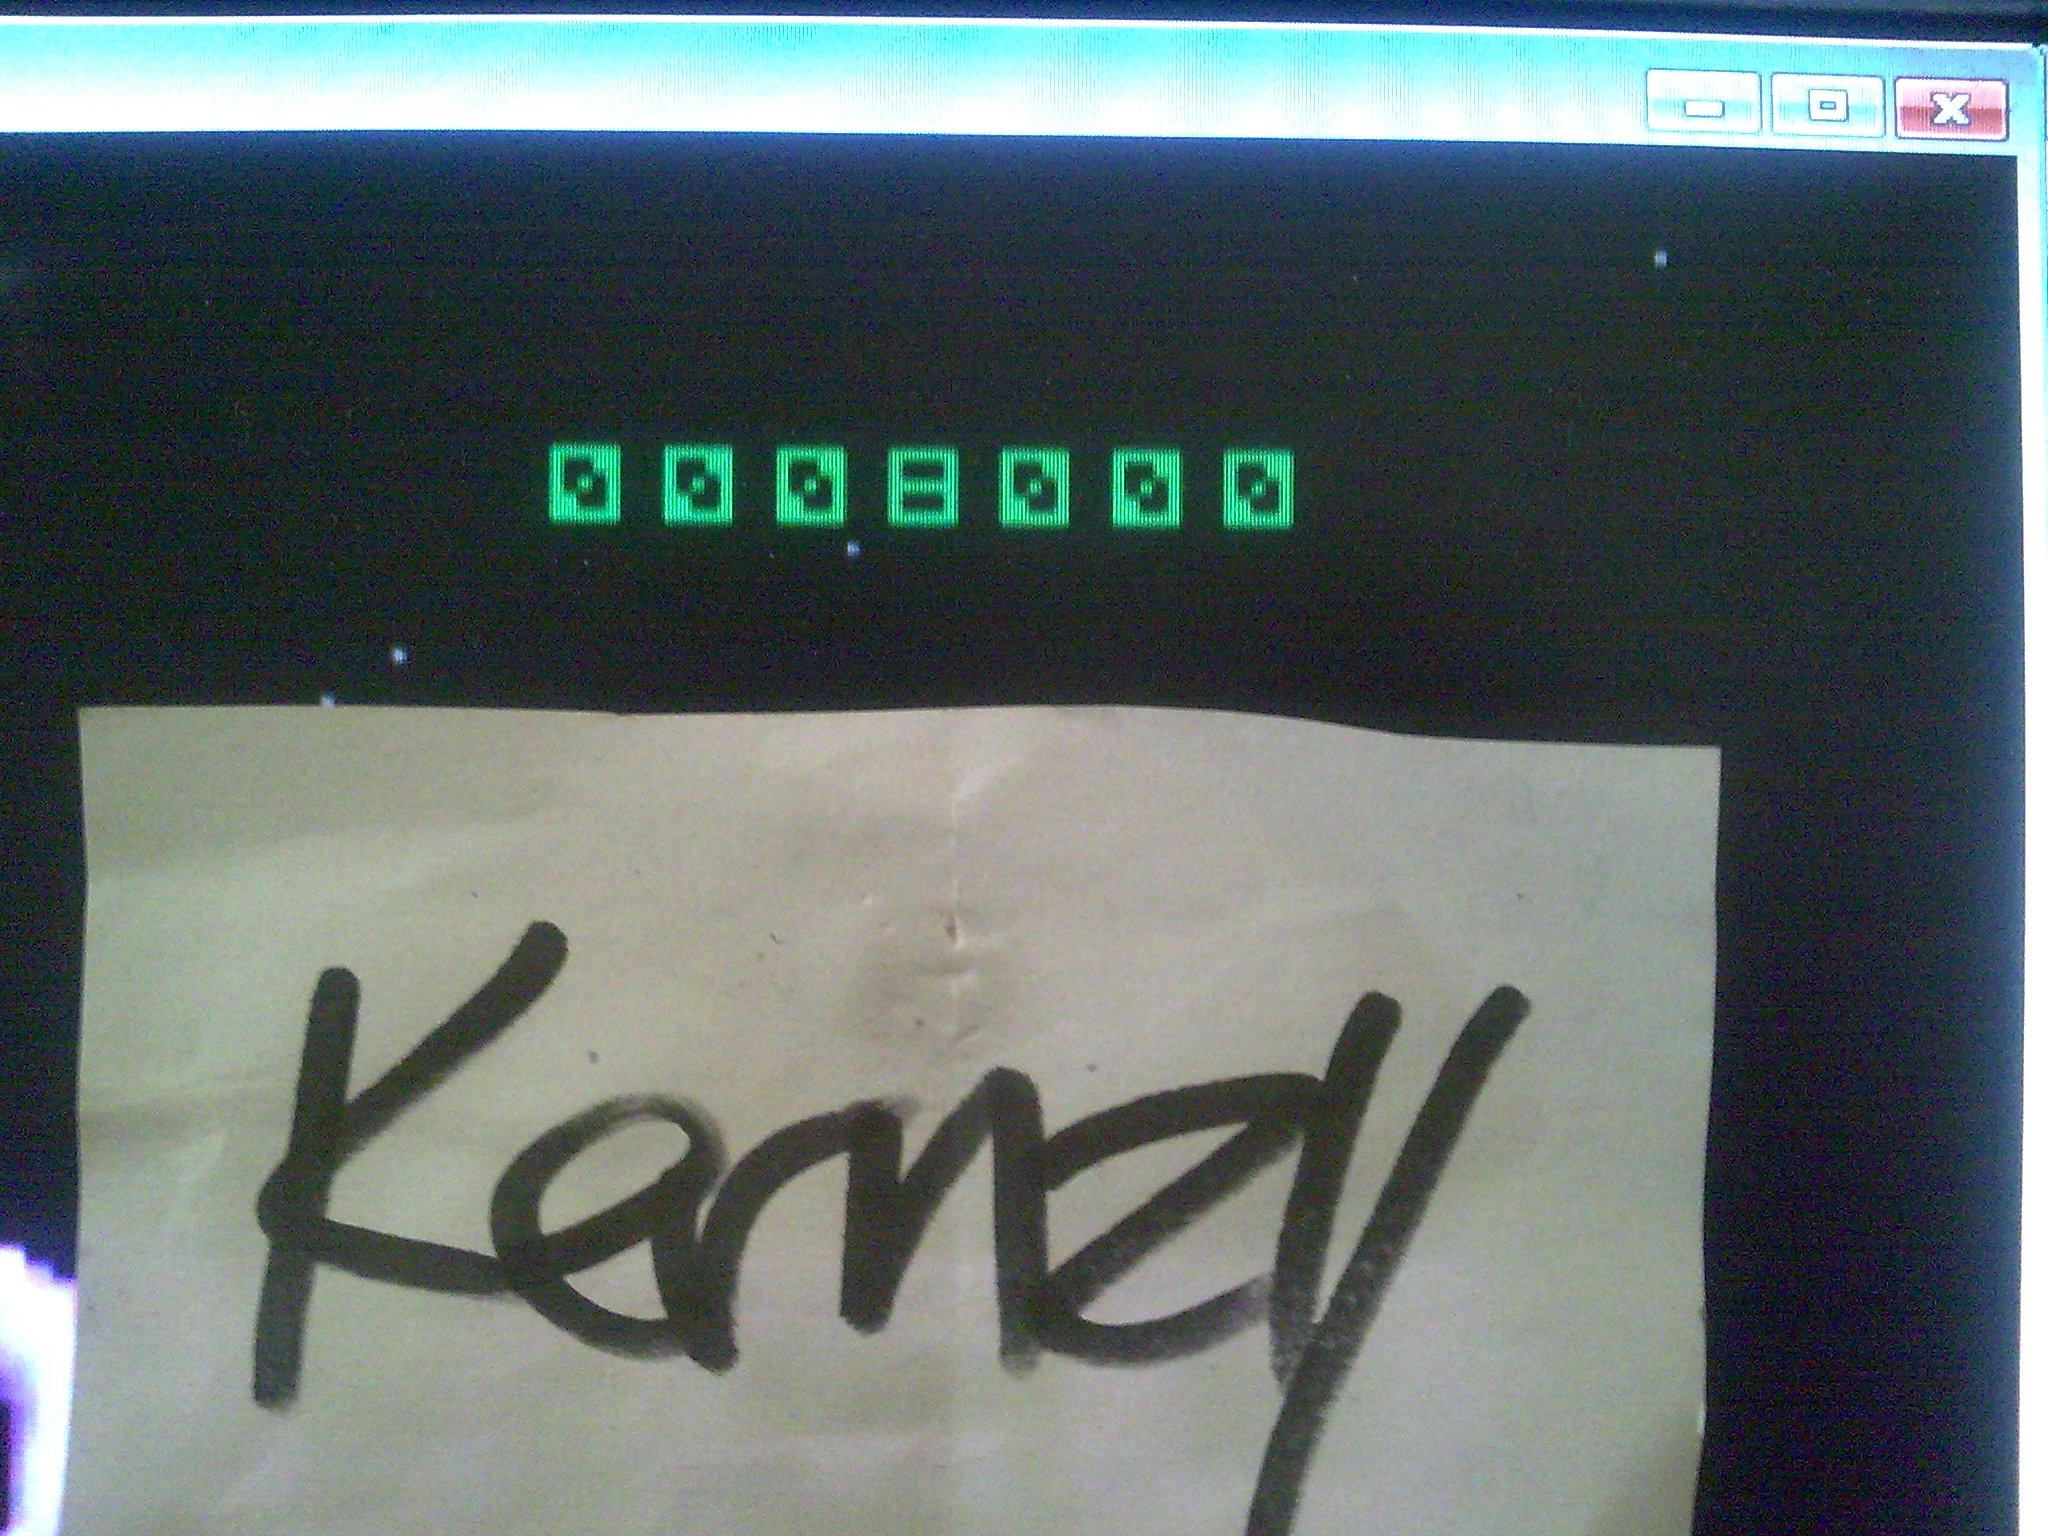 kernzy: Zero 5 (Atari Jaguar Emulated) 8,000 points on 2014-10-12 17:57:34